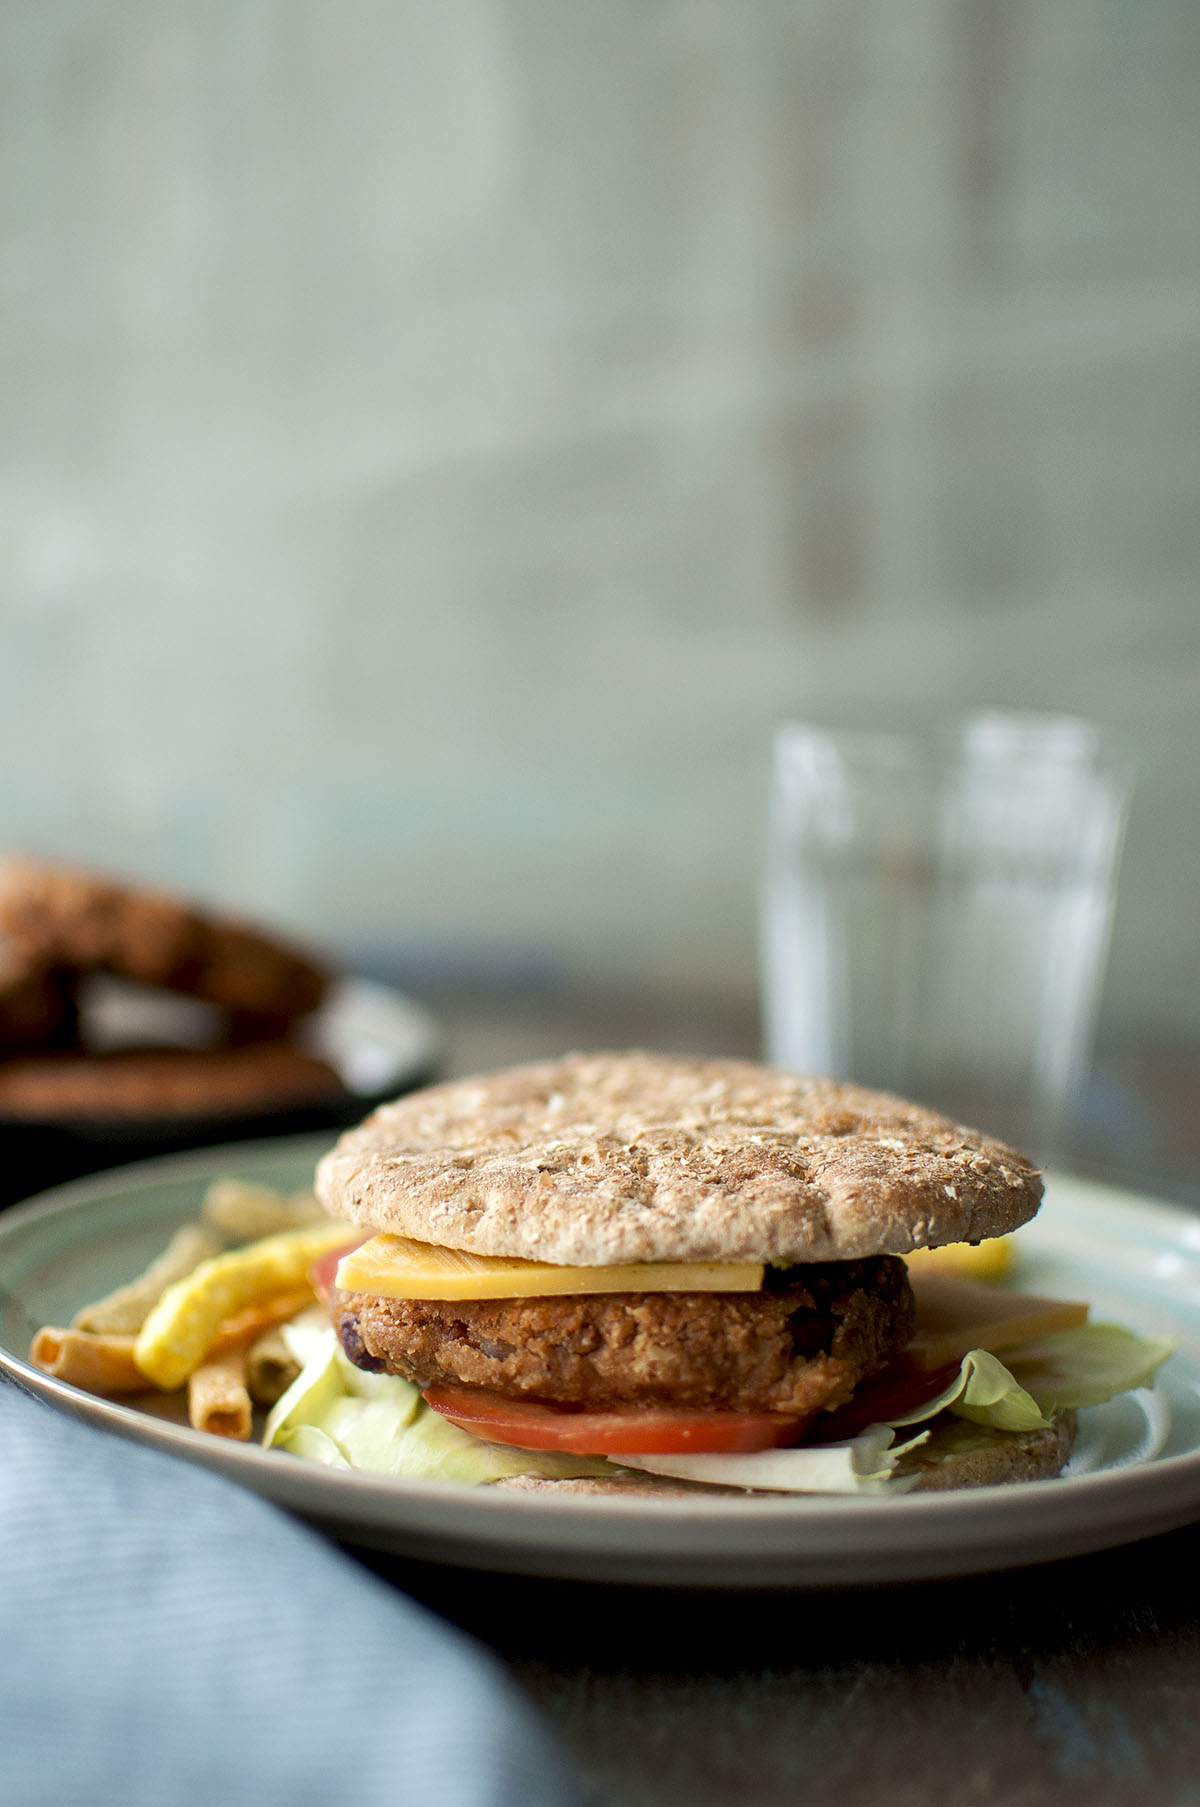 Plate with sandwich with refried bean burger